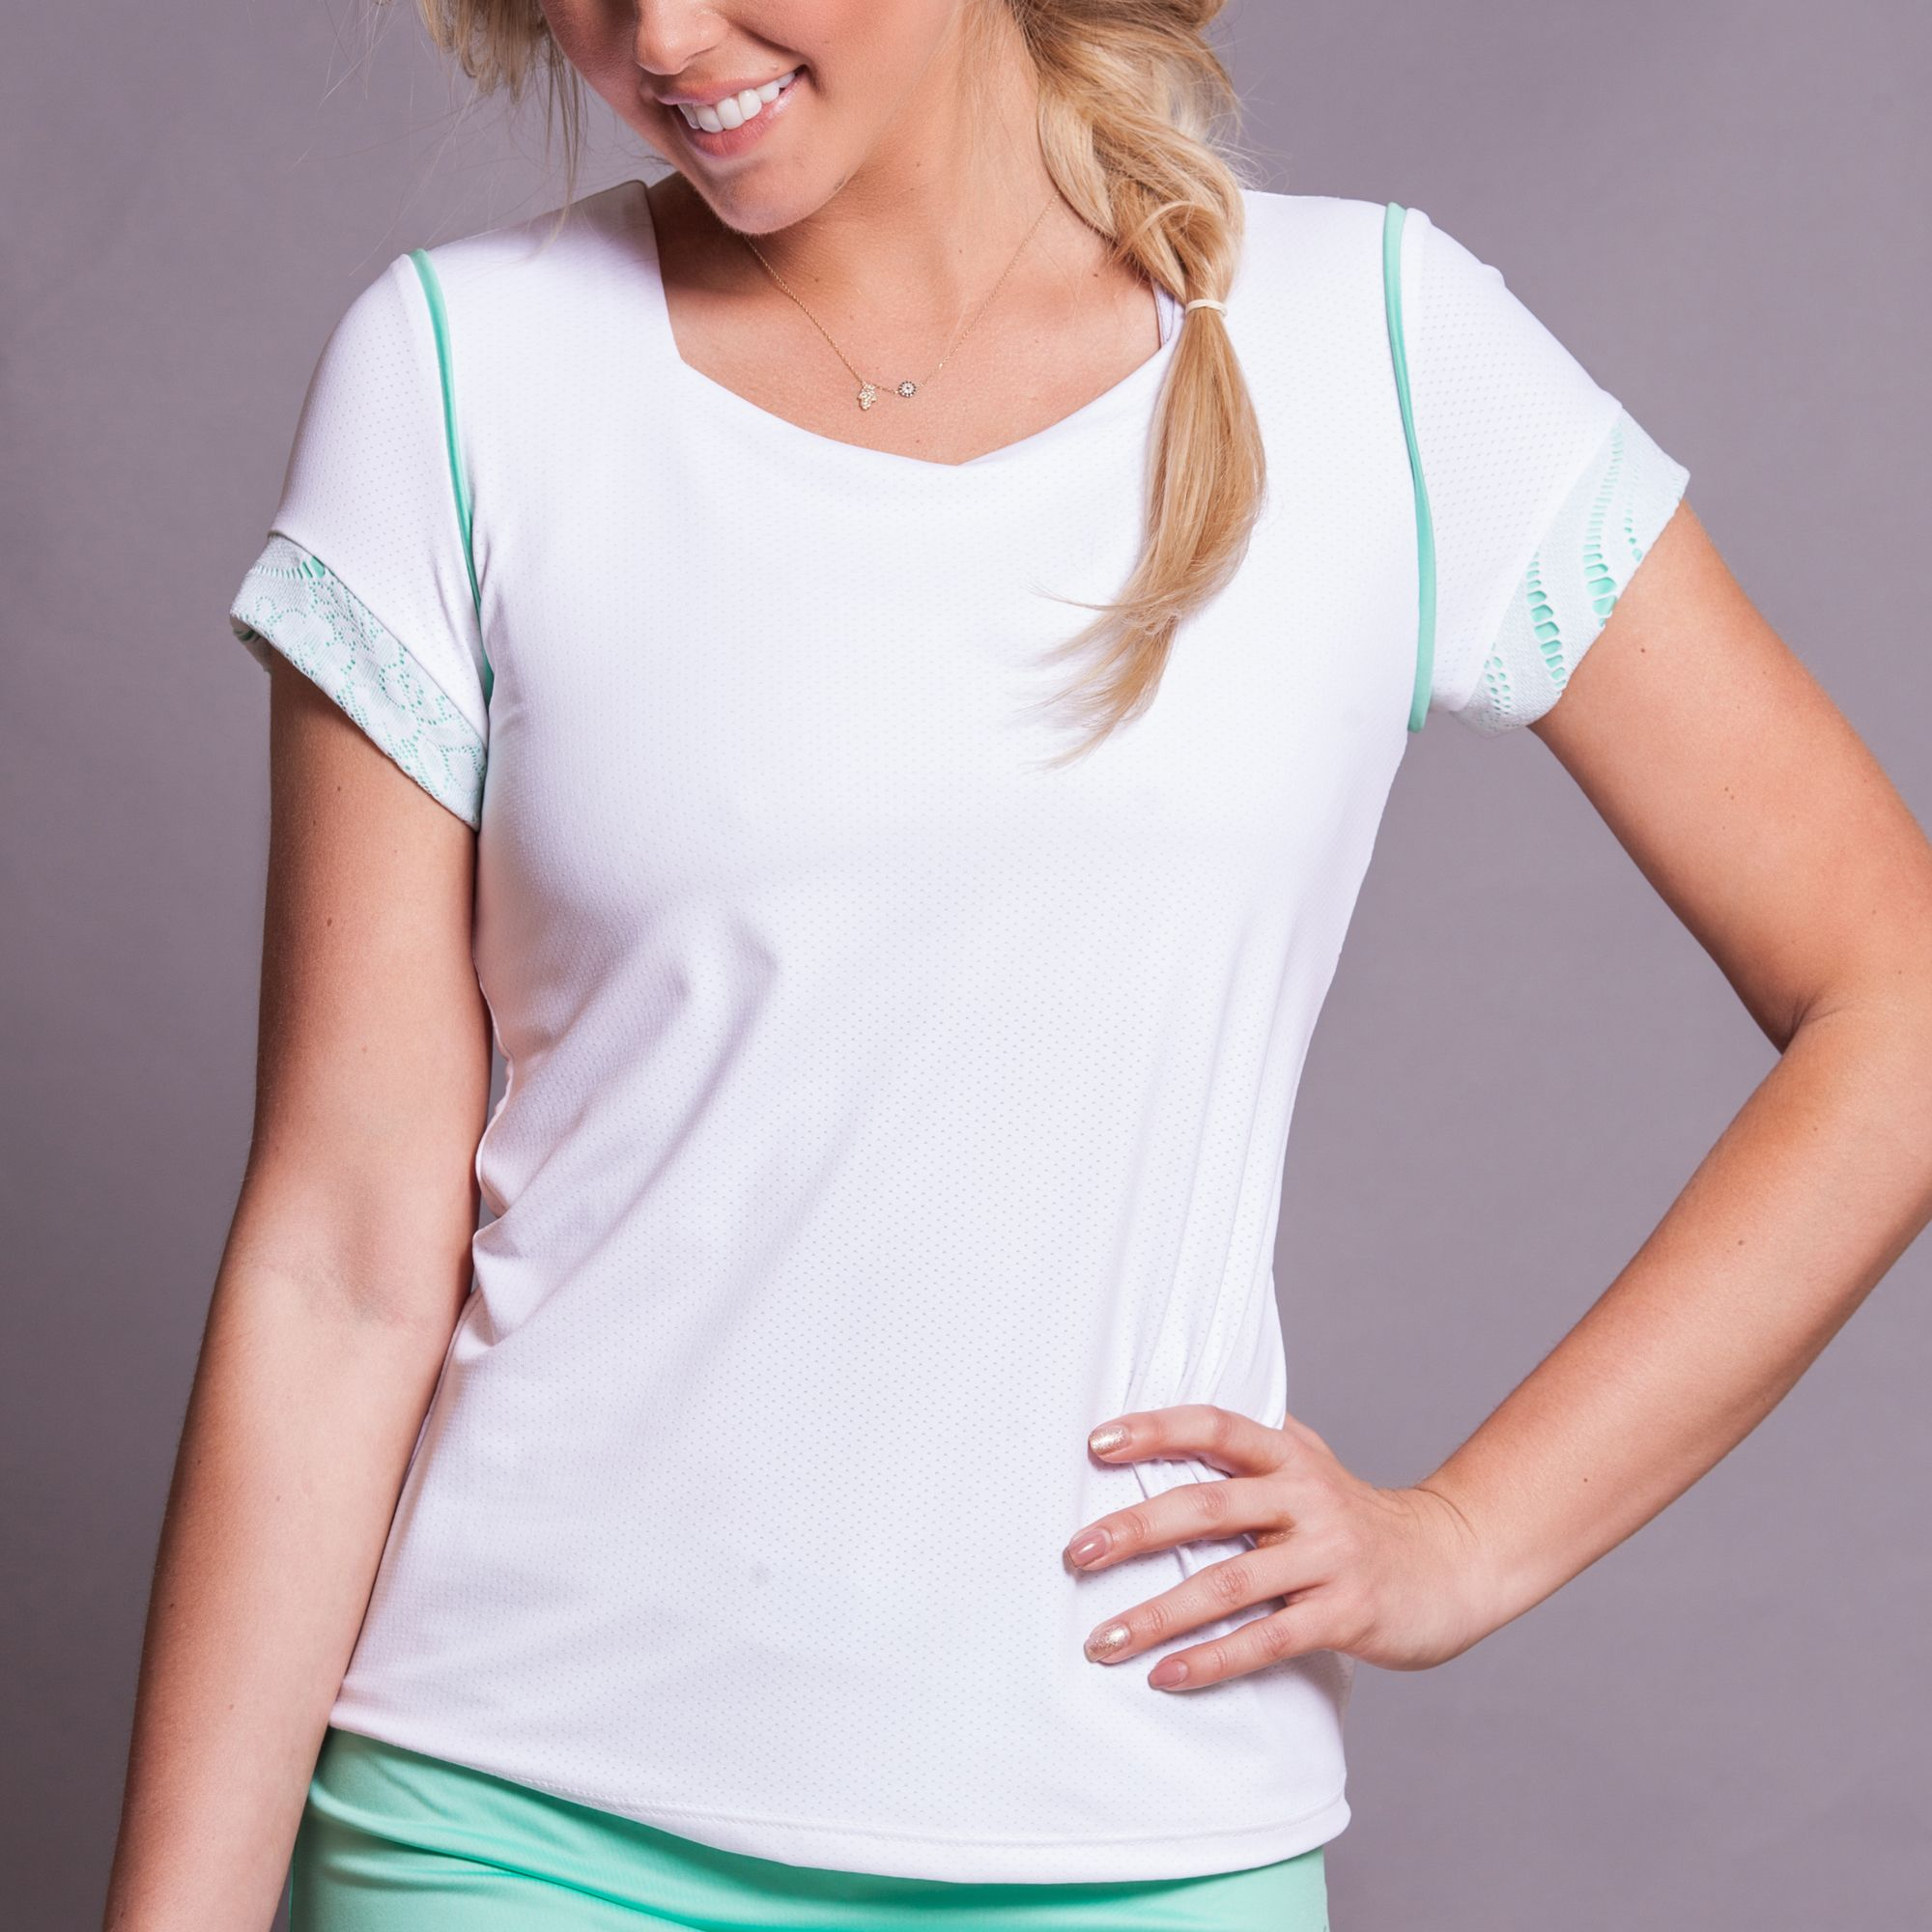 Soft microfiber -mesh cap sleeve, tennis top with green piping detail. Made in USA. SHOP tennis clothes http://www.denisecronwall.com/#!product/prd13/2521066851/calypso-cap-sleeve-top